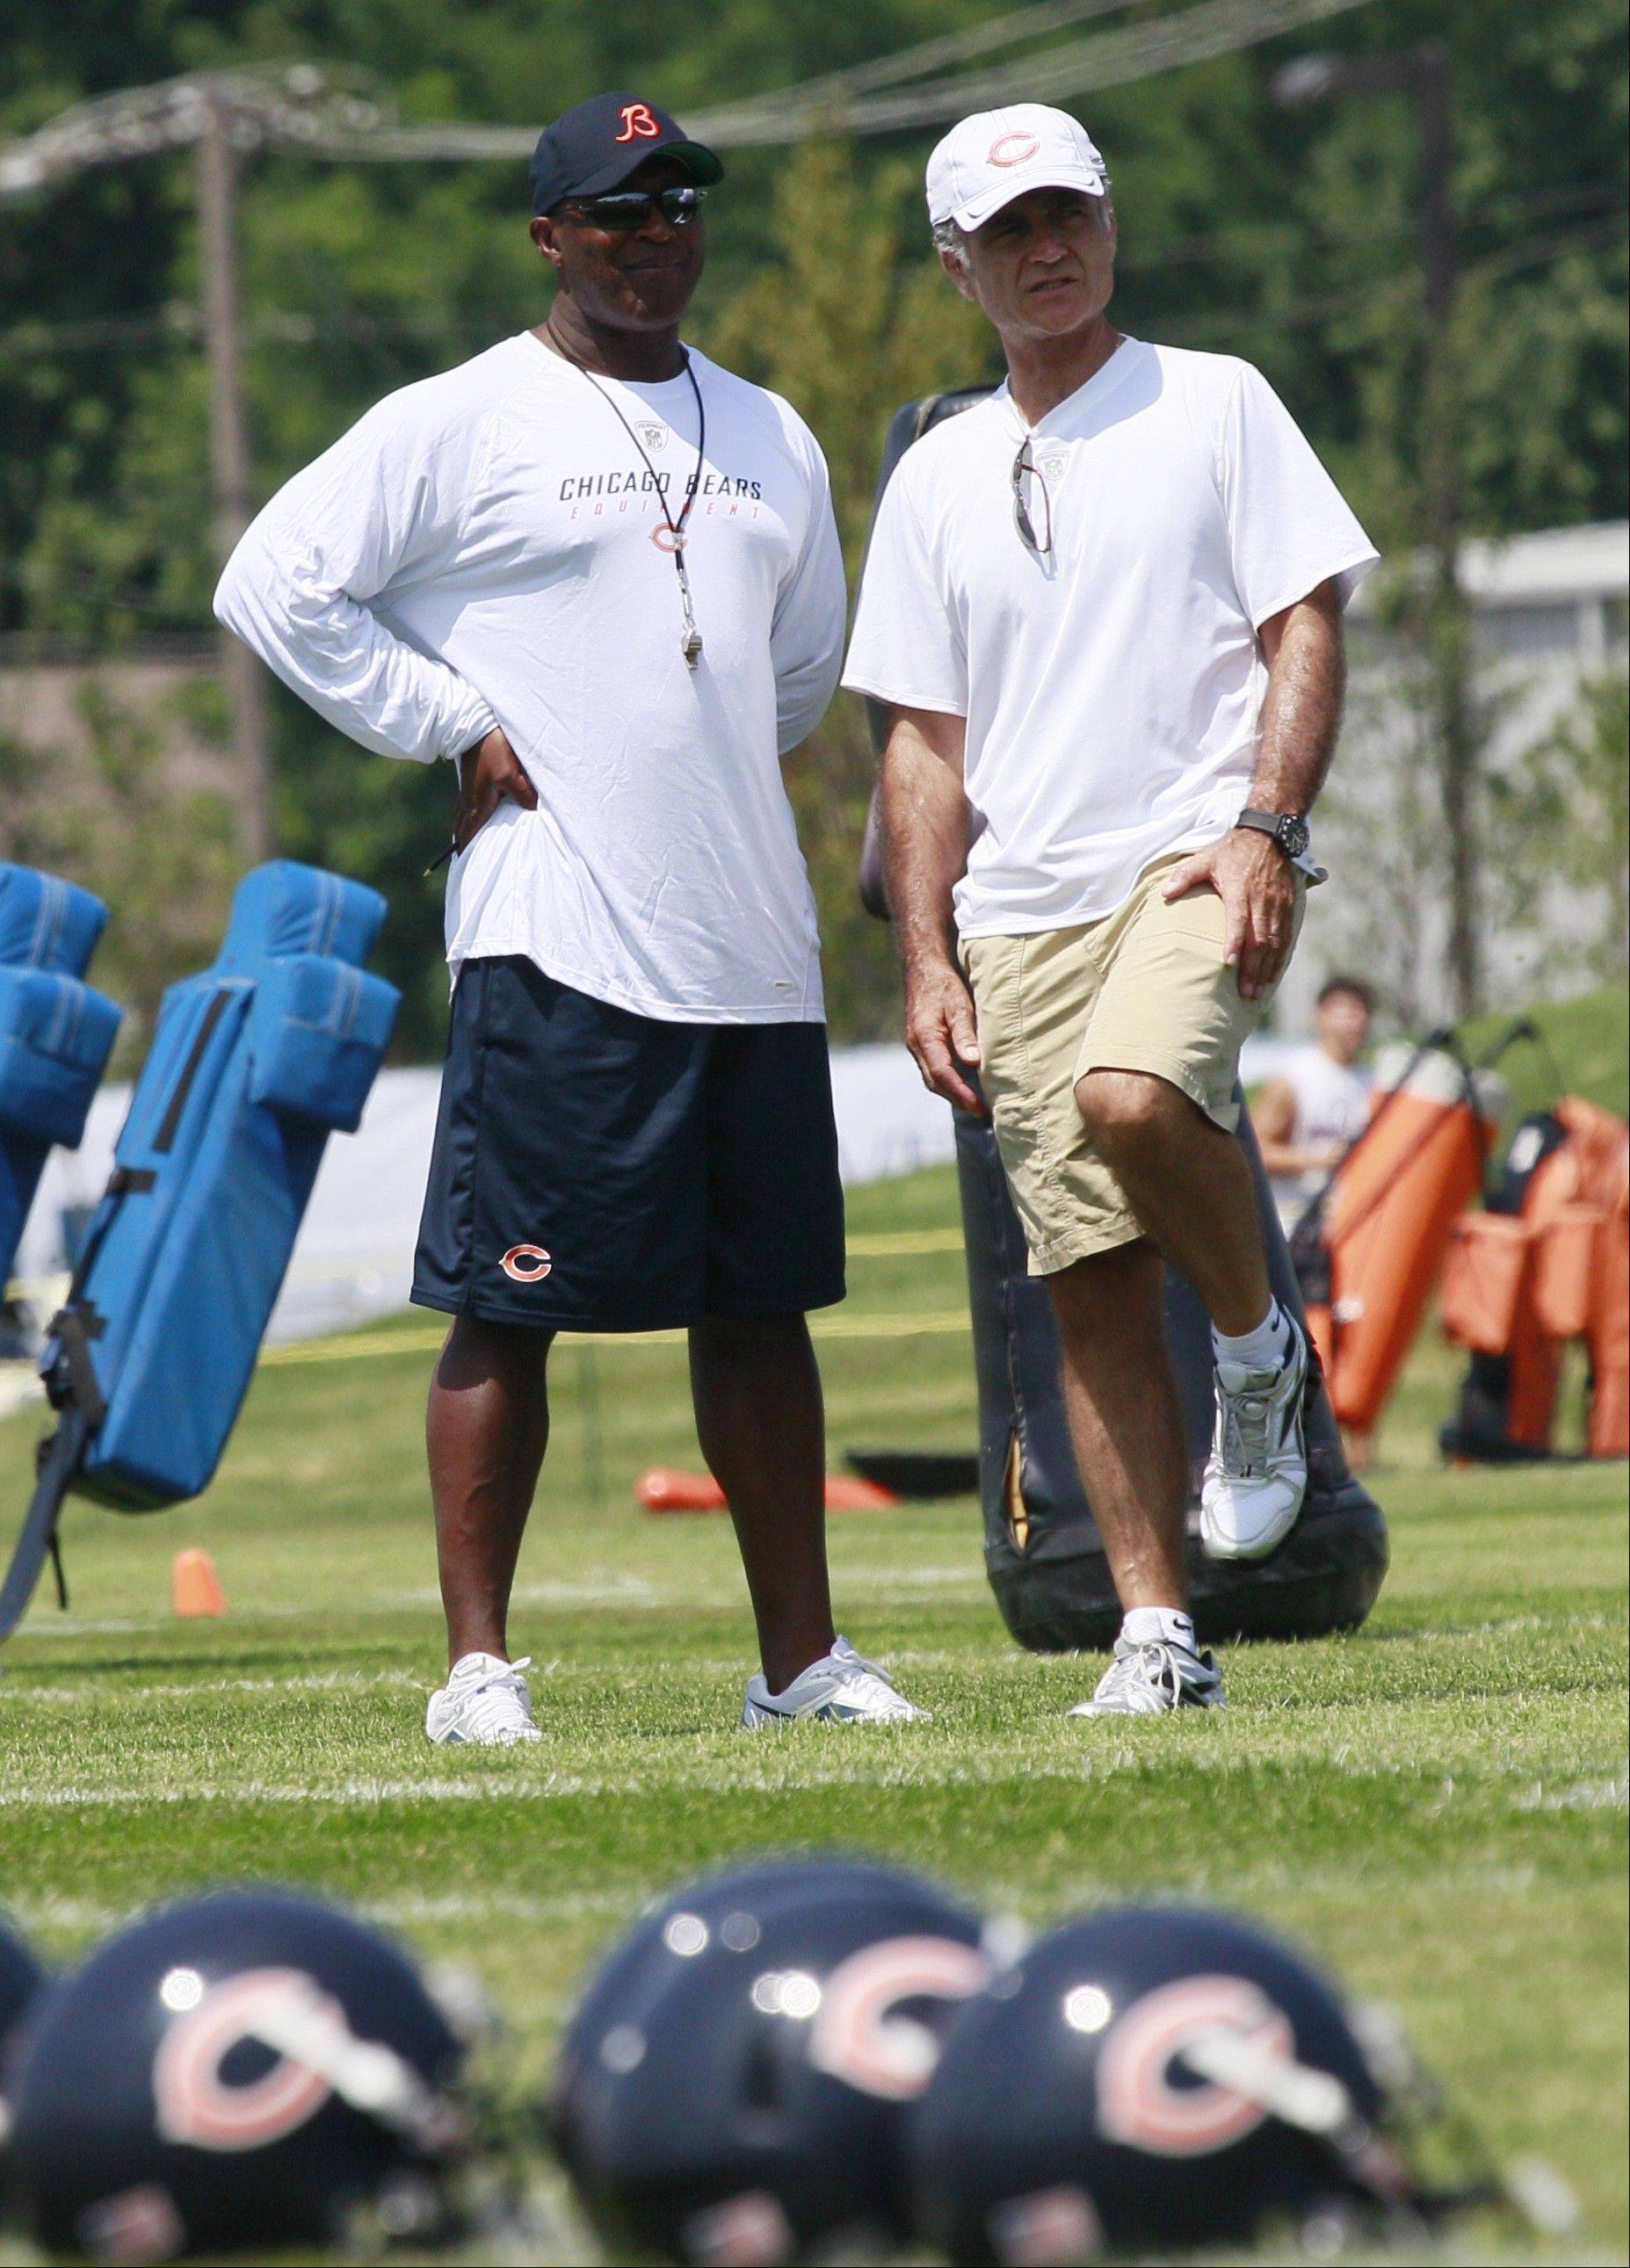 Bears general manager Jerry Angelo, right, talks with head coach Lovie Smith during NFL football training camp on Sunday, July 31, 2011, at Olivet Nazarene University in Bourbonnais.